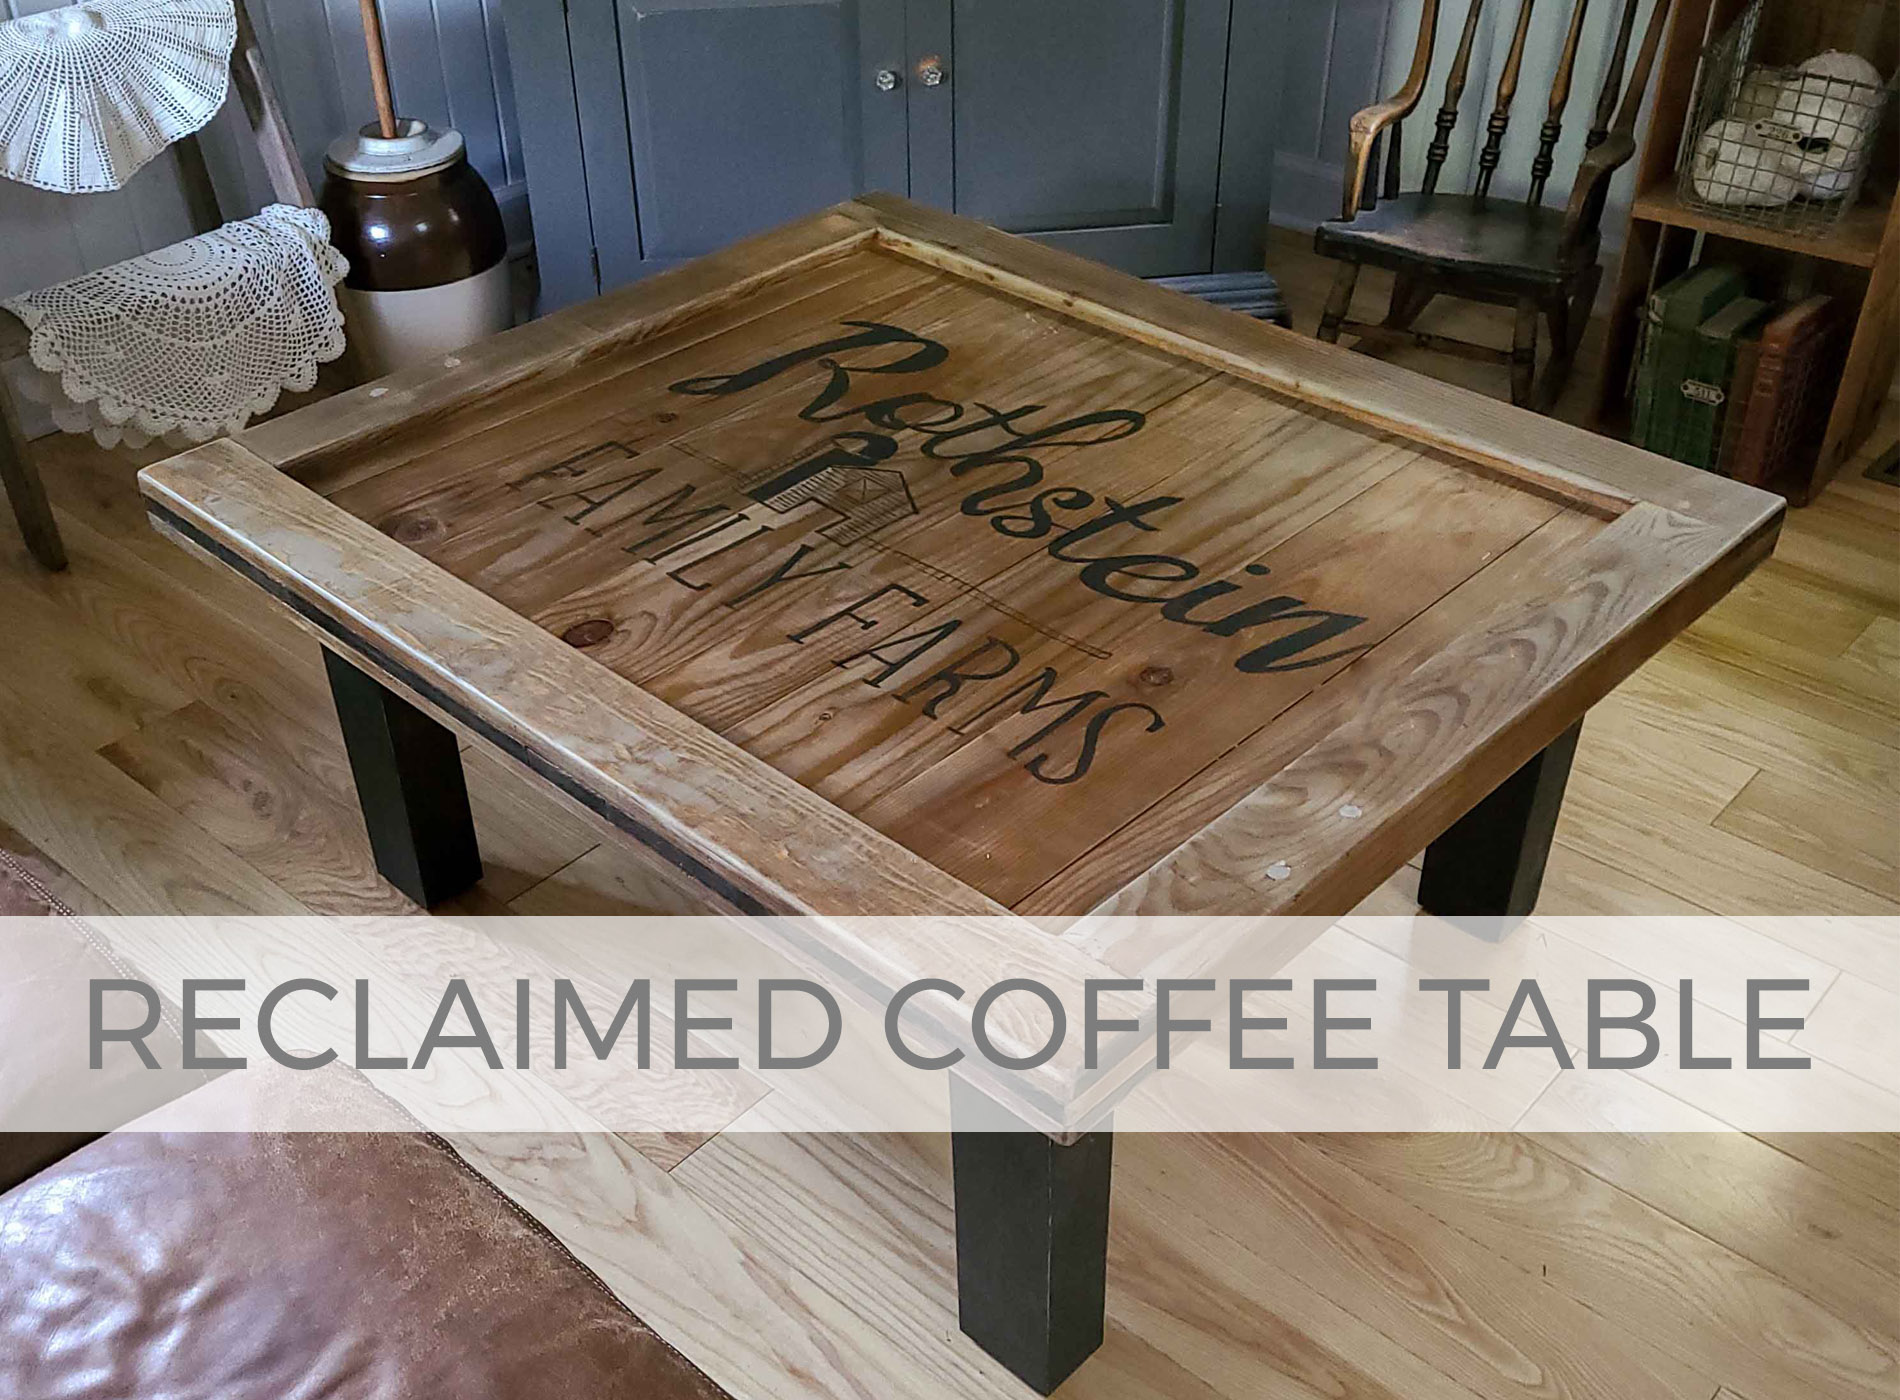 Reclaimed Coffee Table Built by Larissa of Prodigal Pieces | prodigalpieces.com